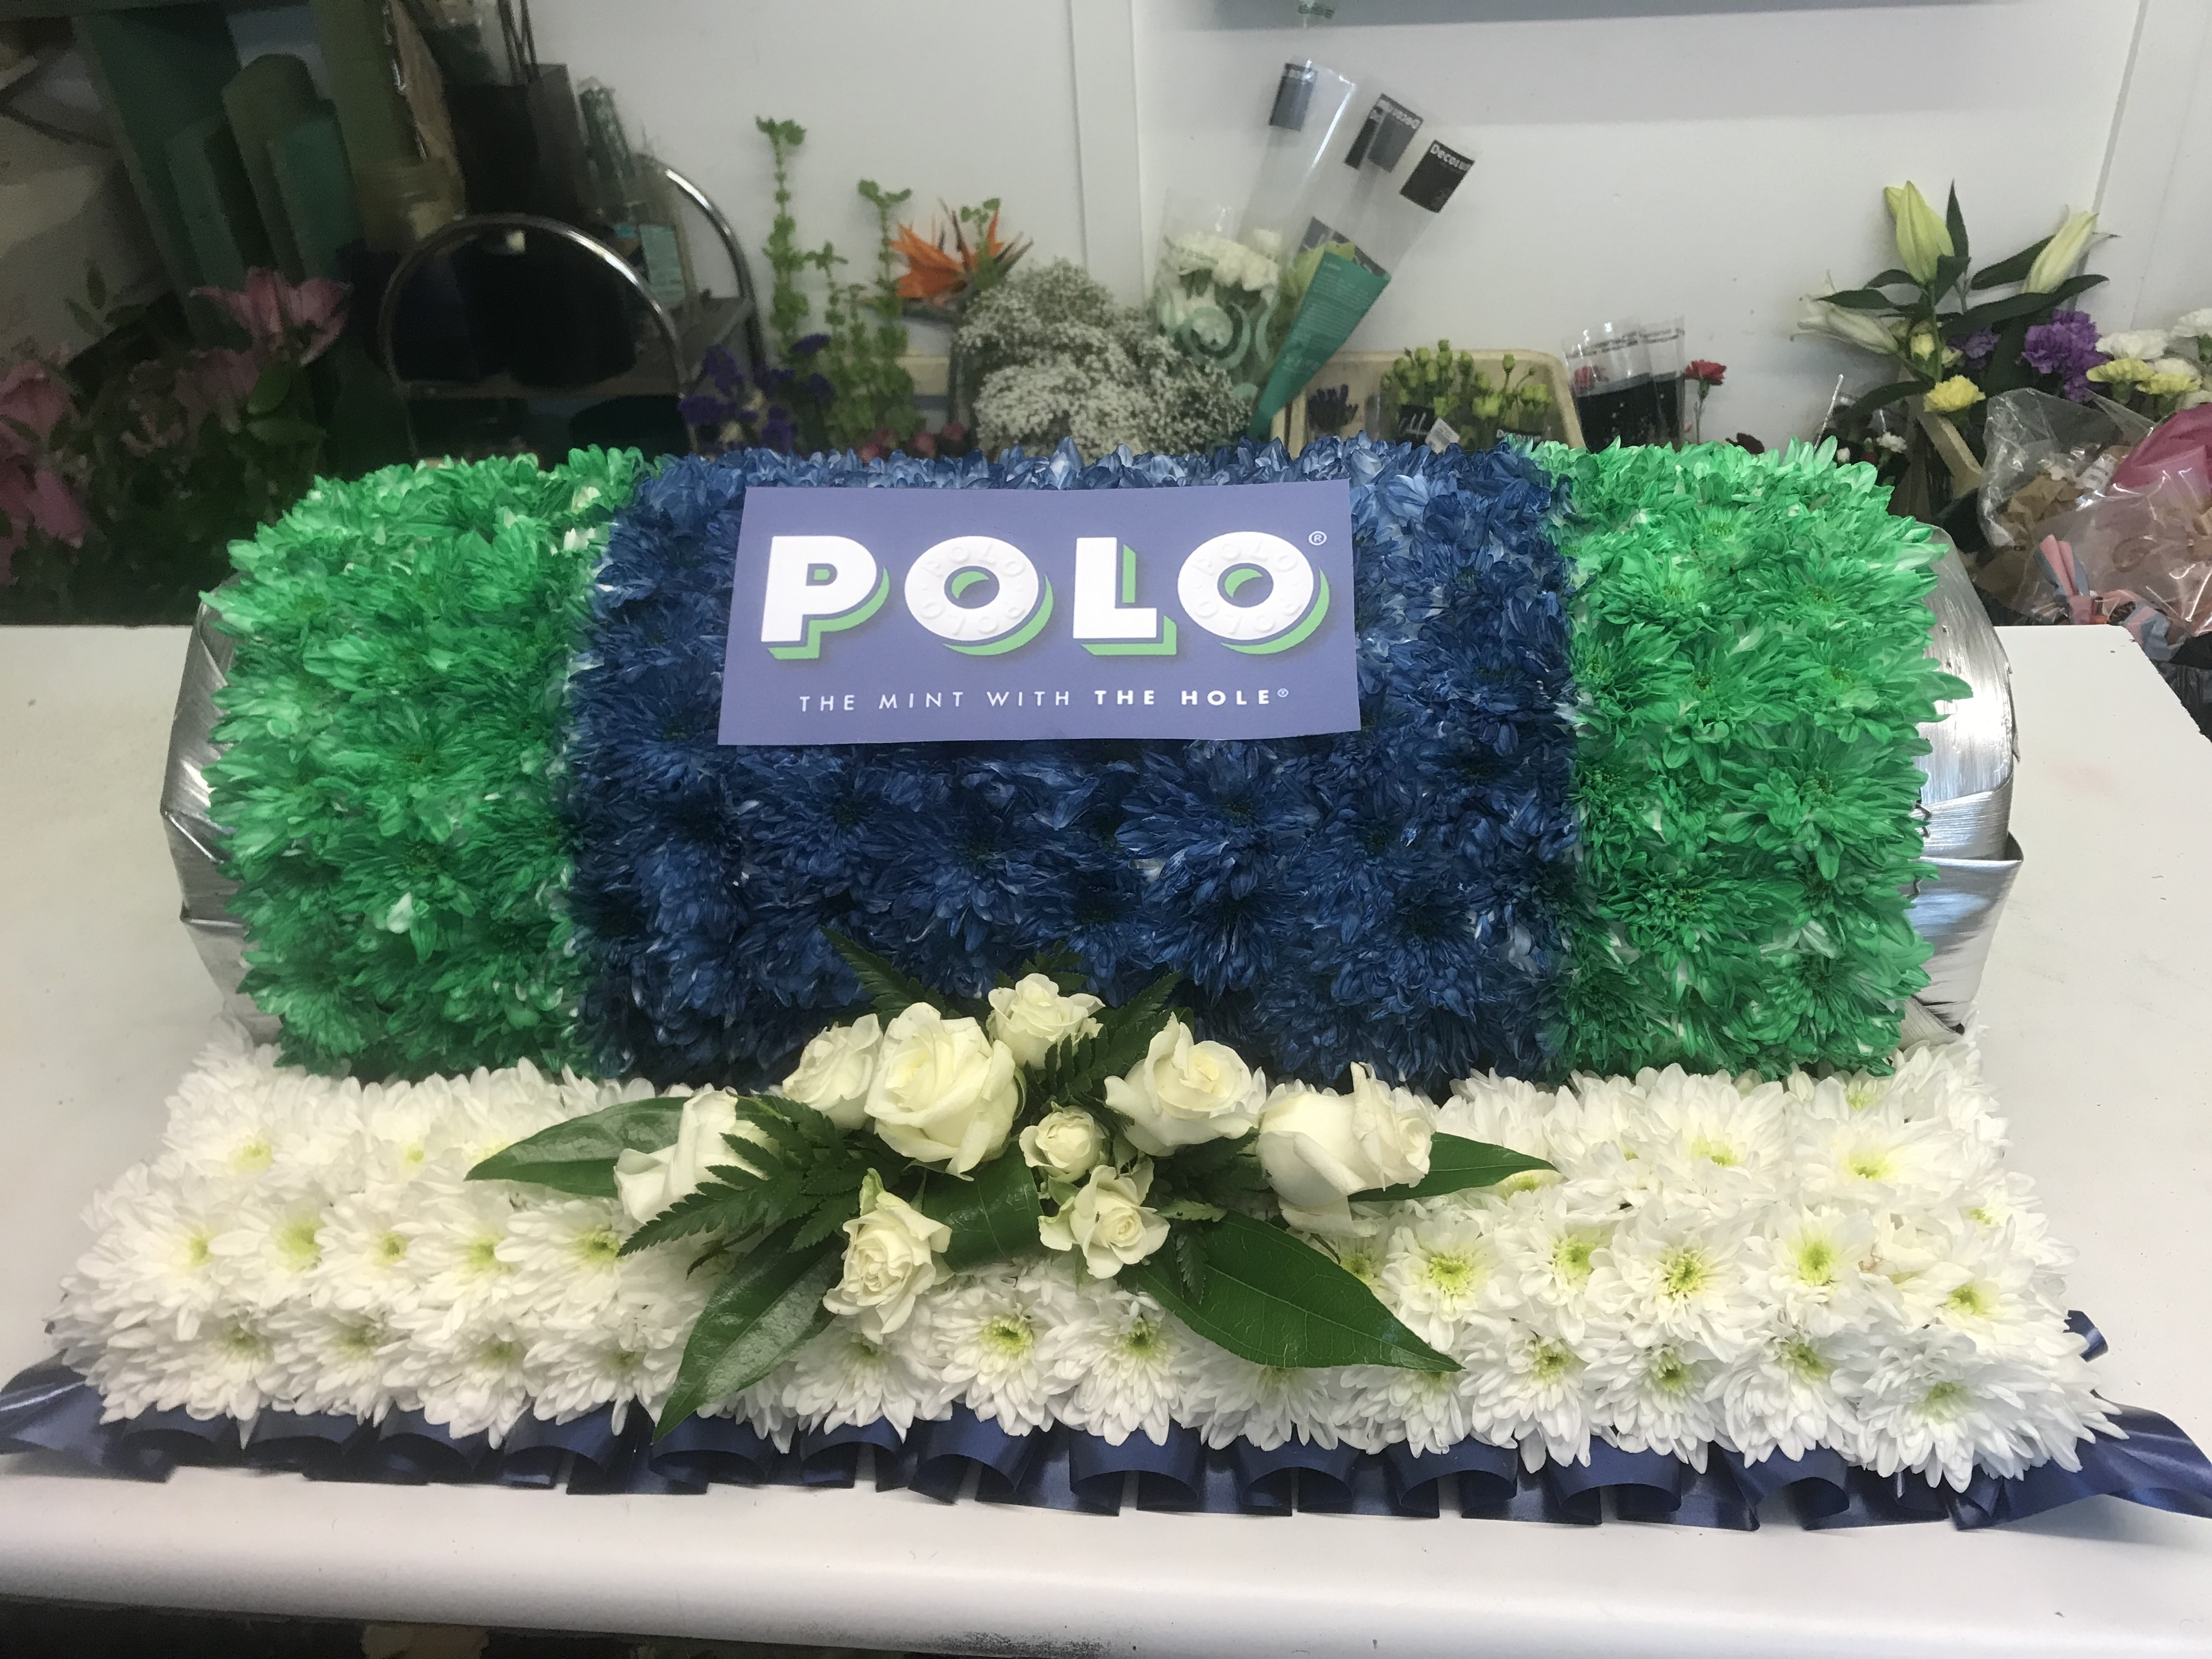 Polo Mints made from flowers